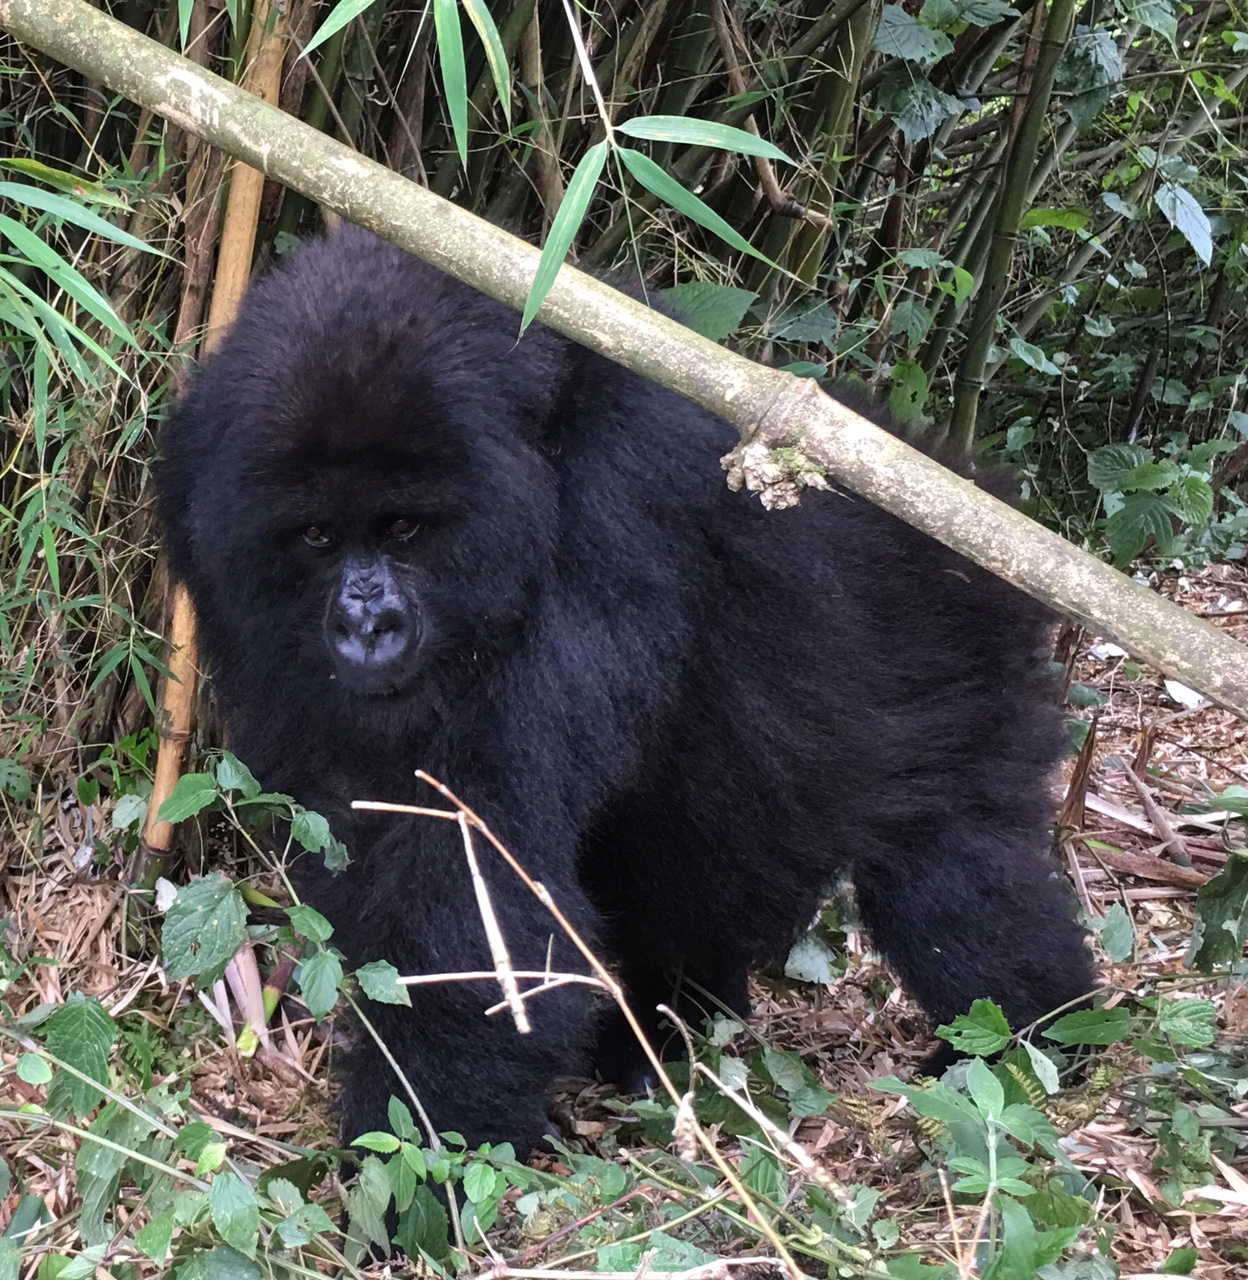 Gorilla from the Amahoro (Peace) group in a bamboo stand during rainy season. (Amahoro group is not part of this study.)